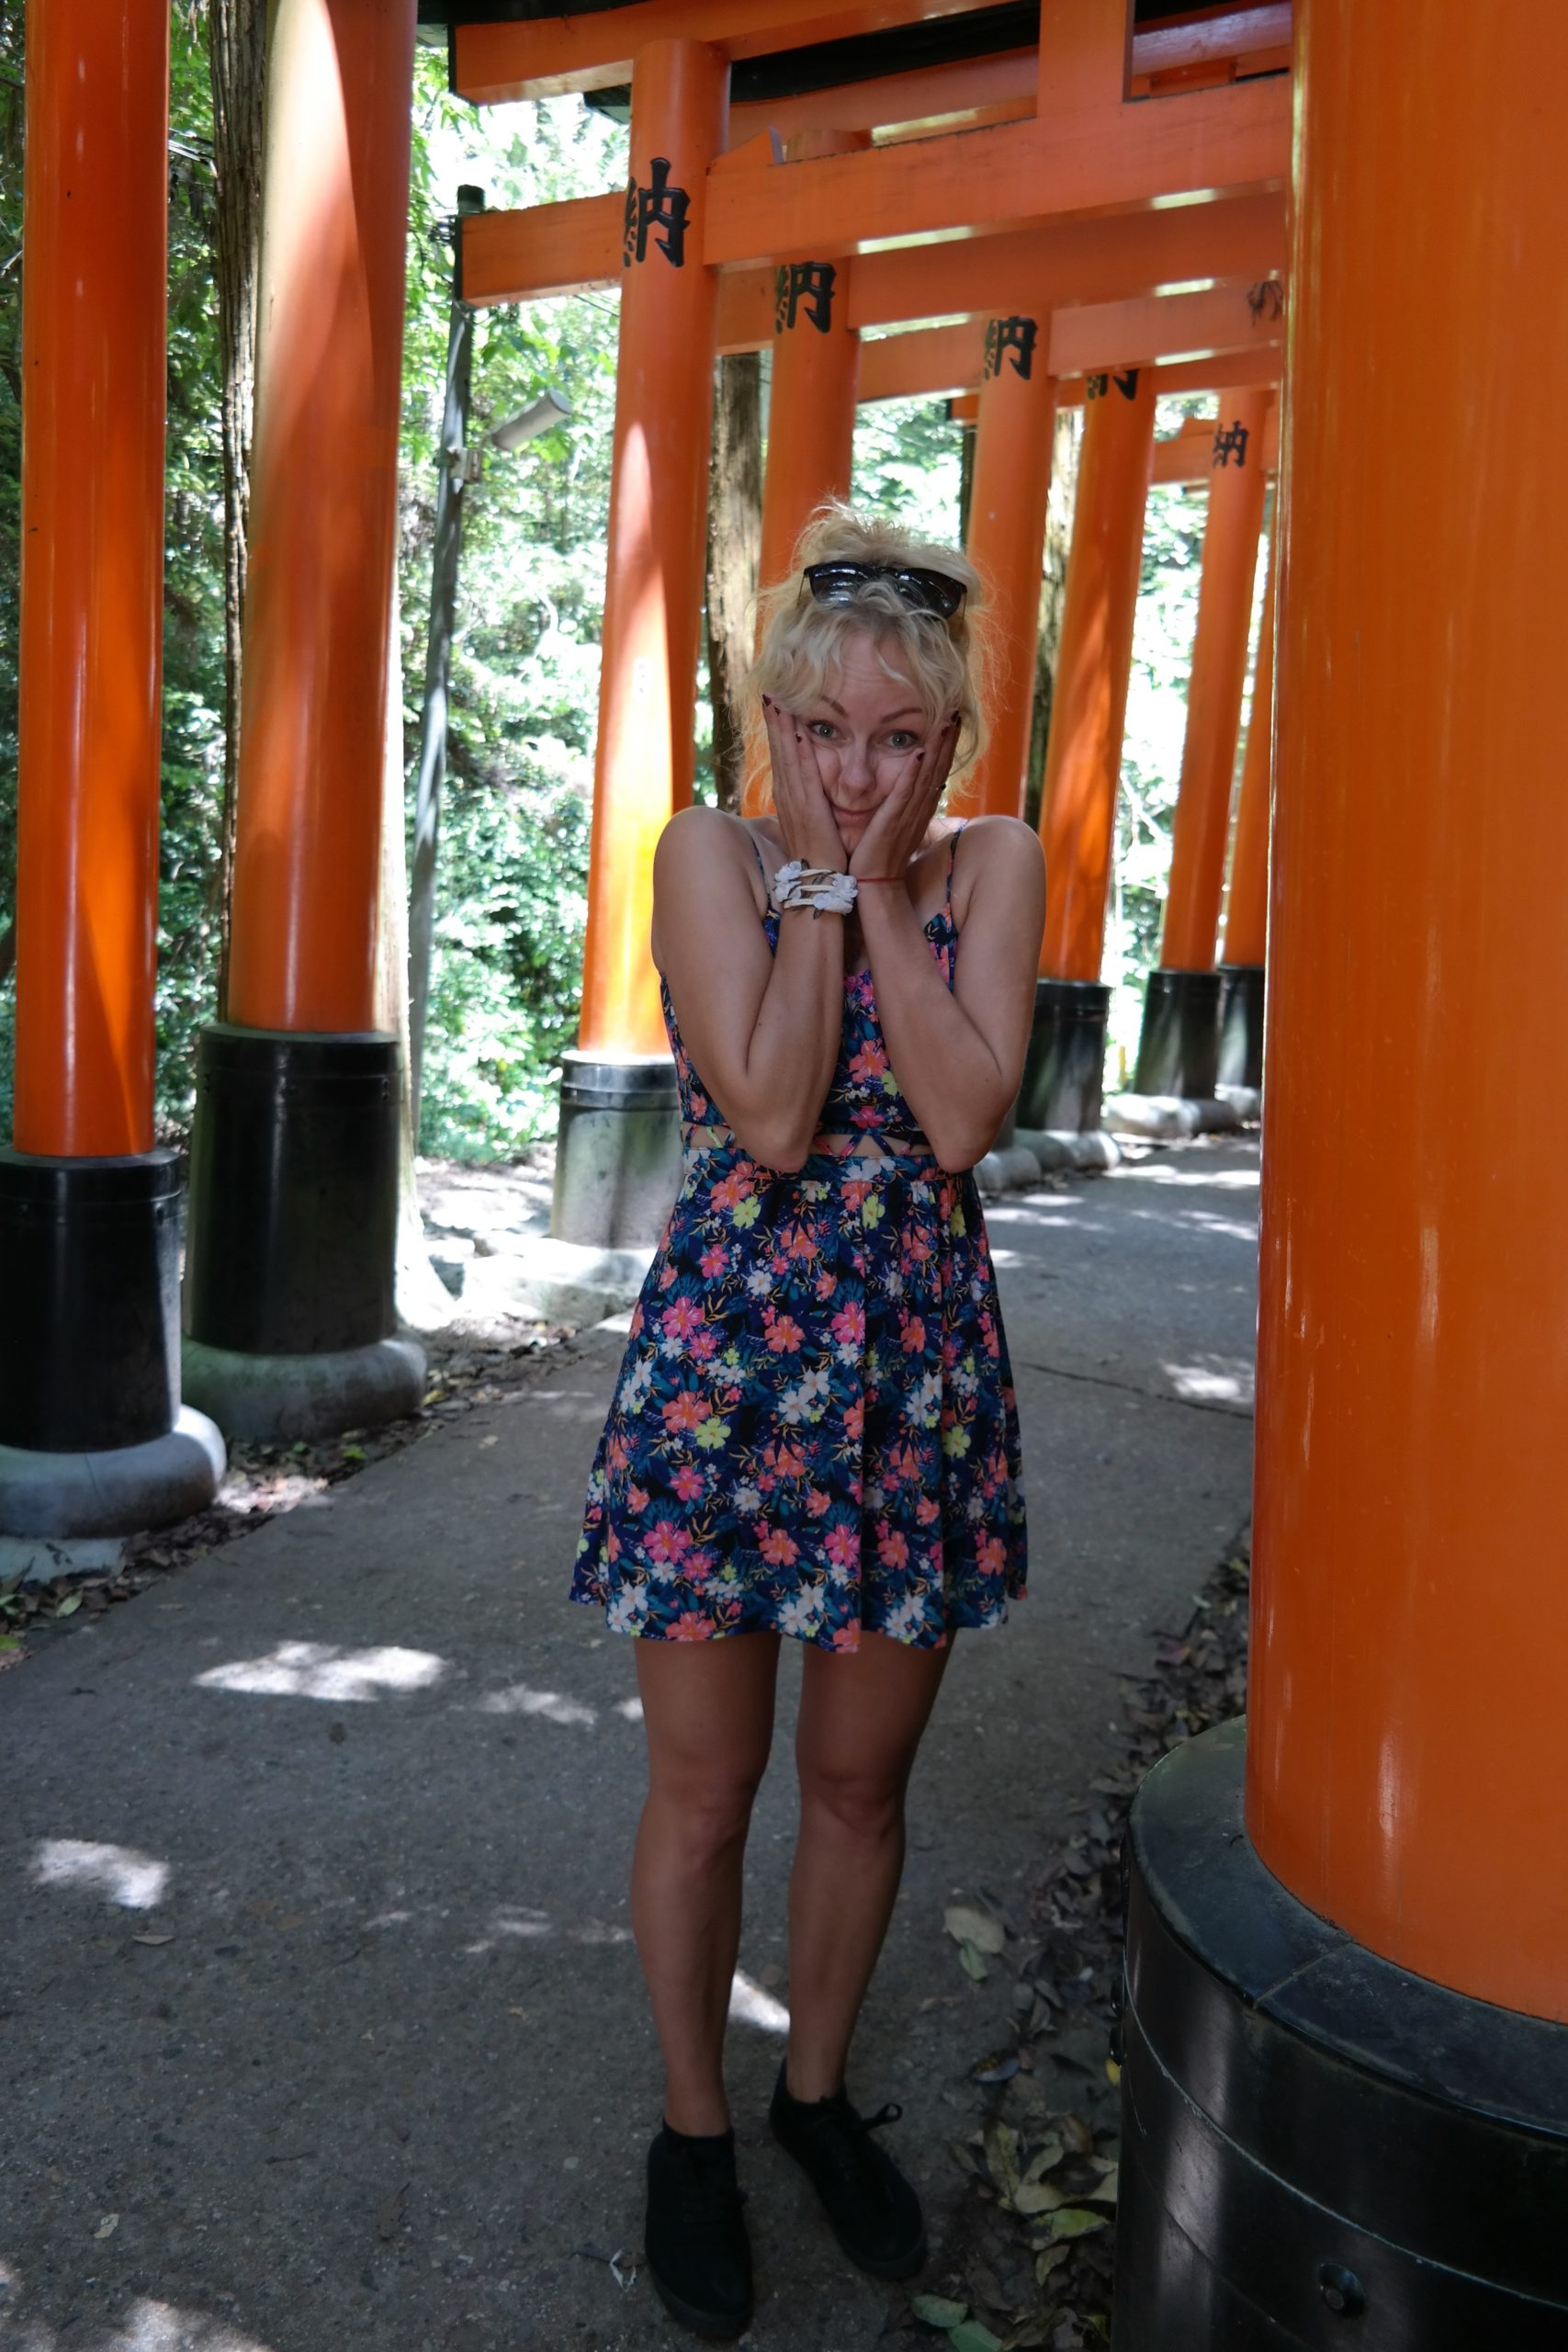 embarrassed girl in a temple